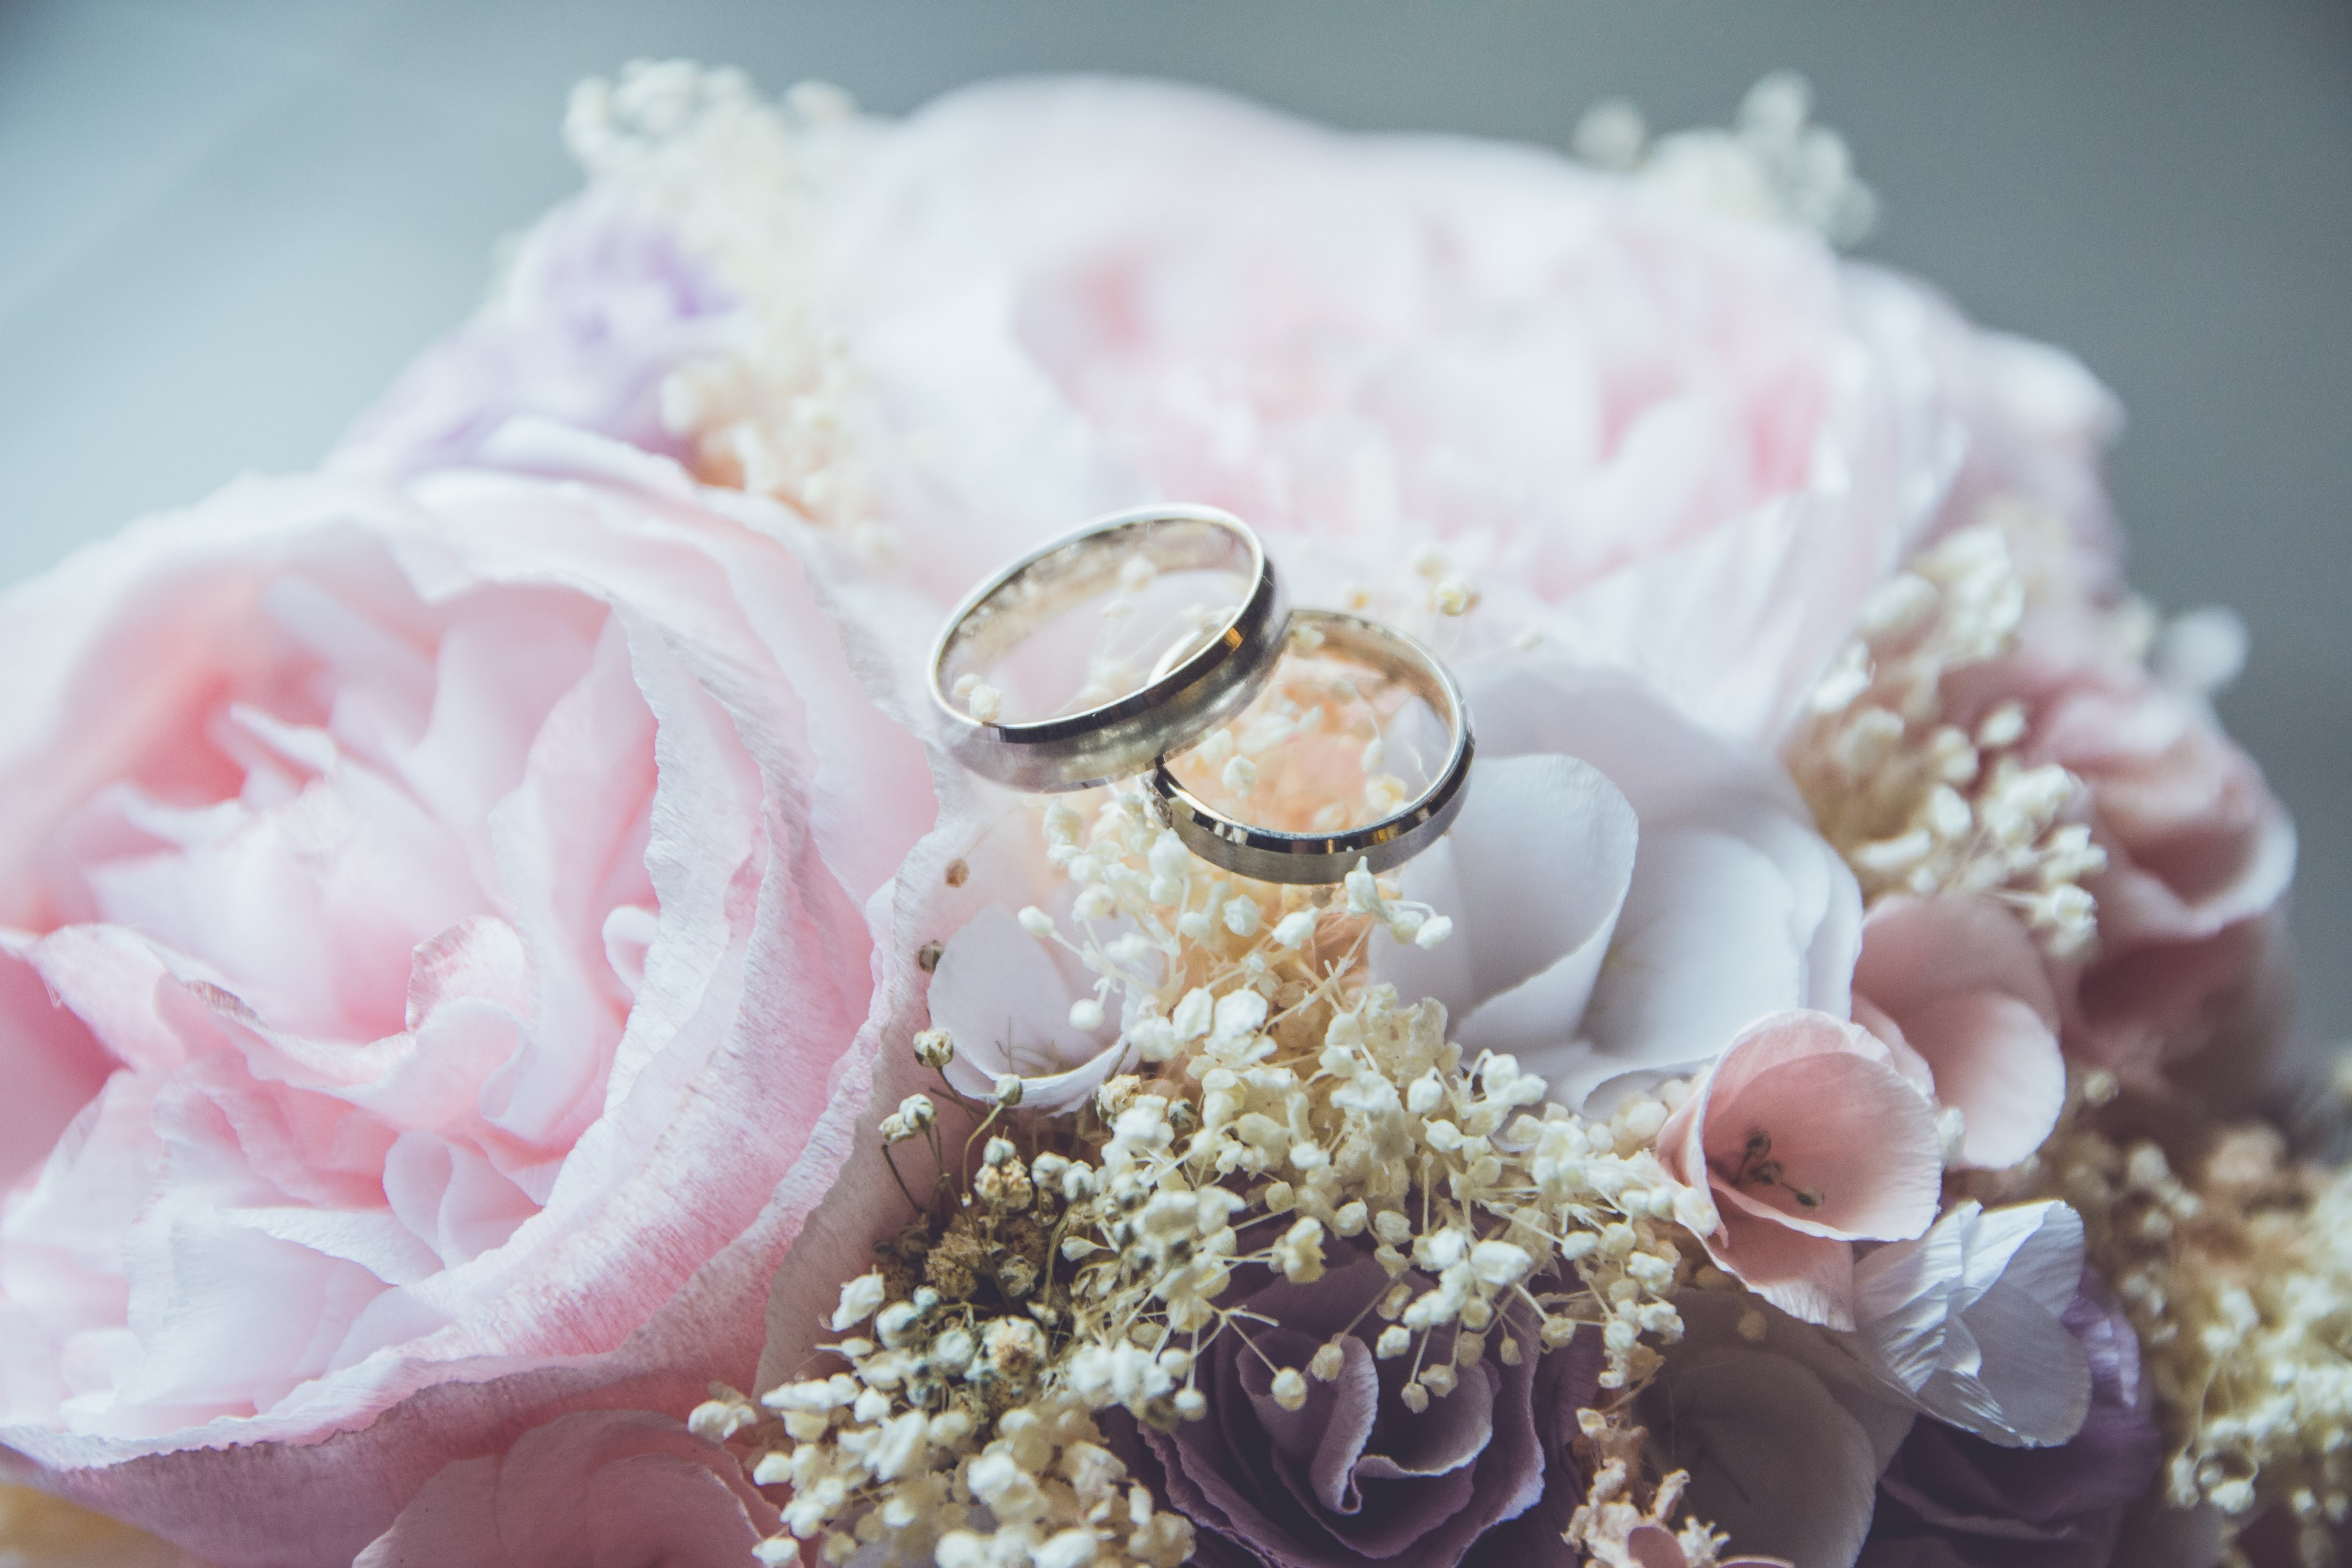 Wedding Ring And Flowers Photography , HD Wallpaper & Backgrounds